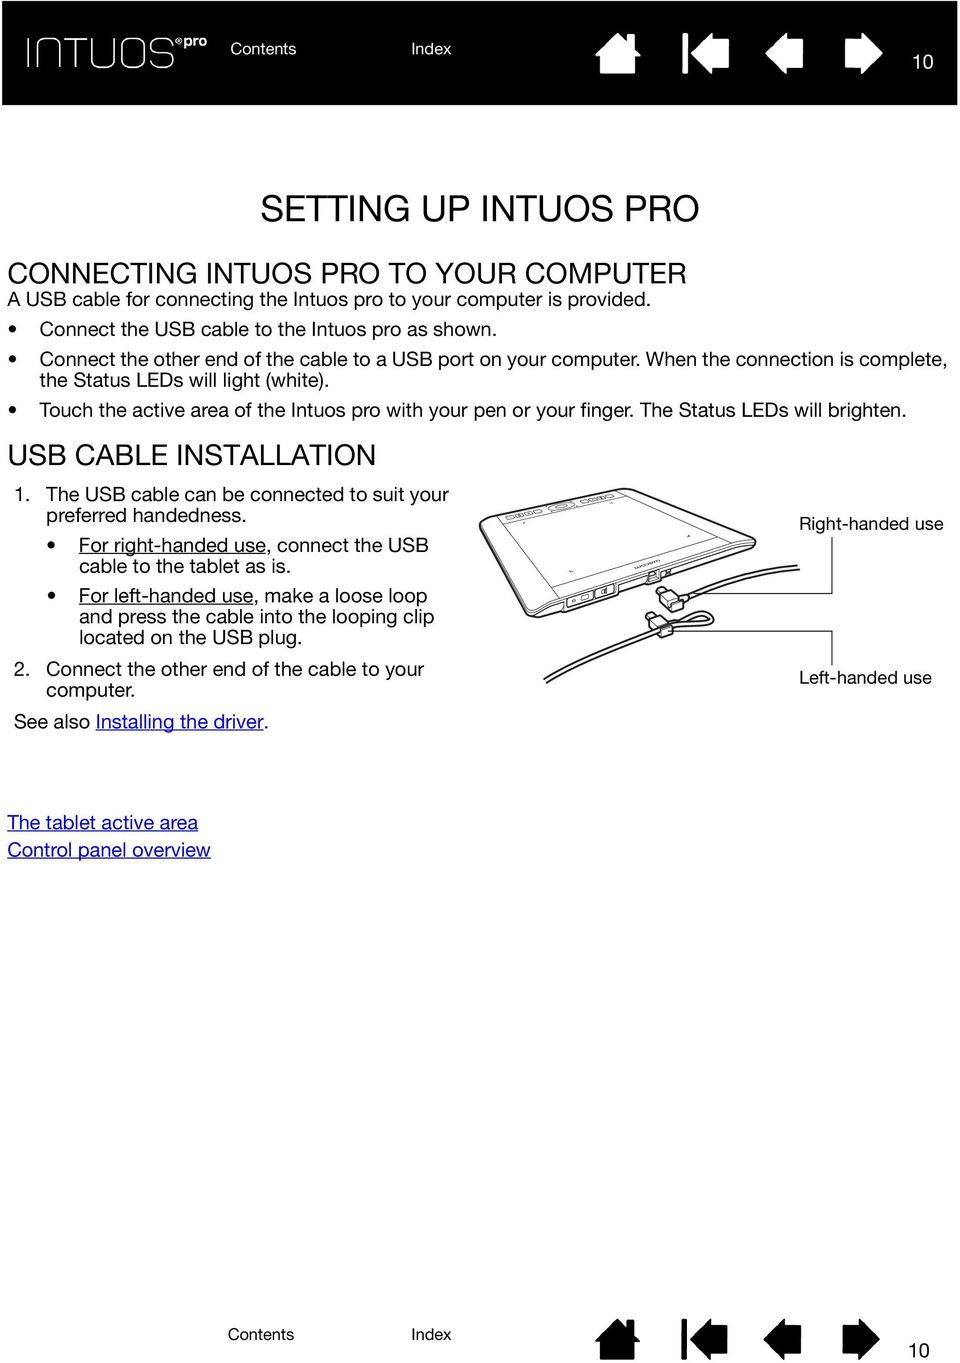 Touch the active area of the Intuos pro with your pen or your finger. The Status LEDs will brighten. USB CABLE INSTALLATION 1. The USB cable can be connected to suit your preferred handedness.